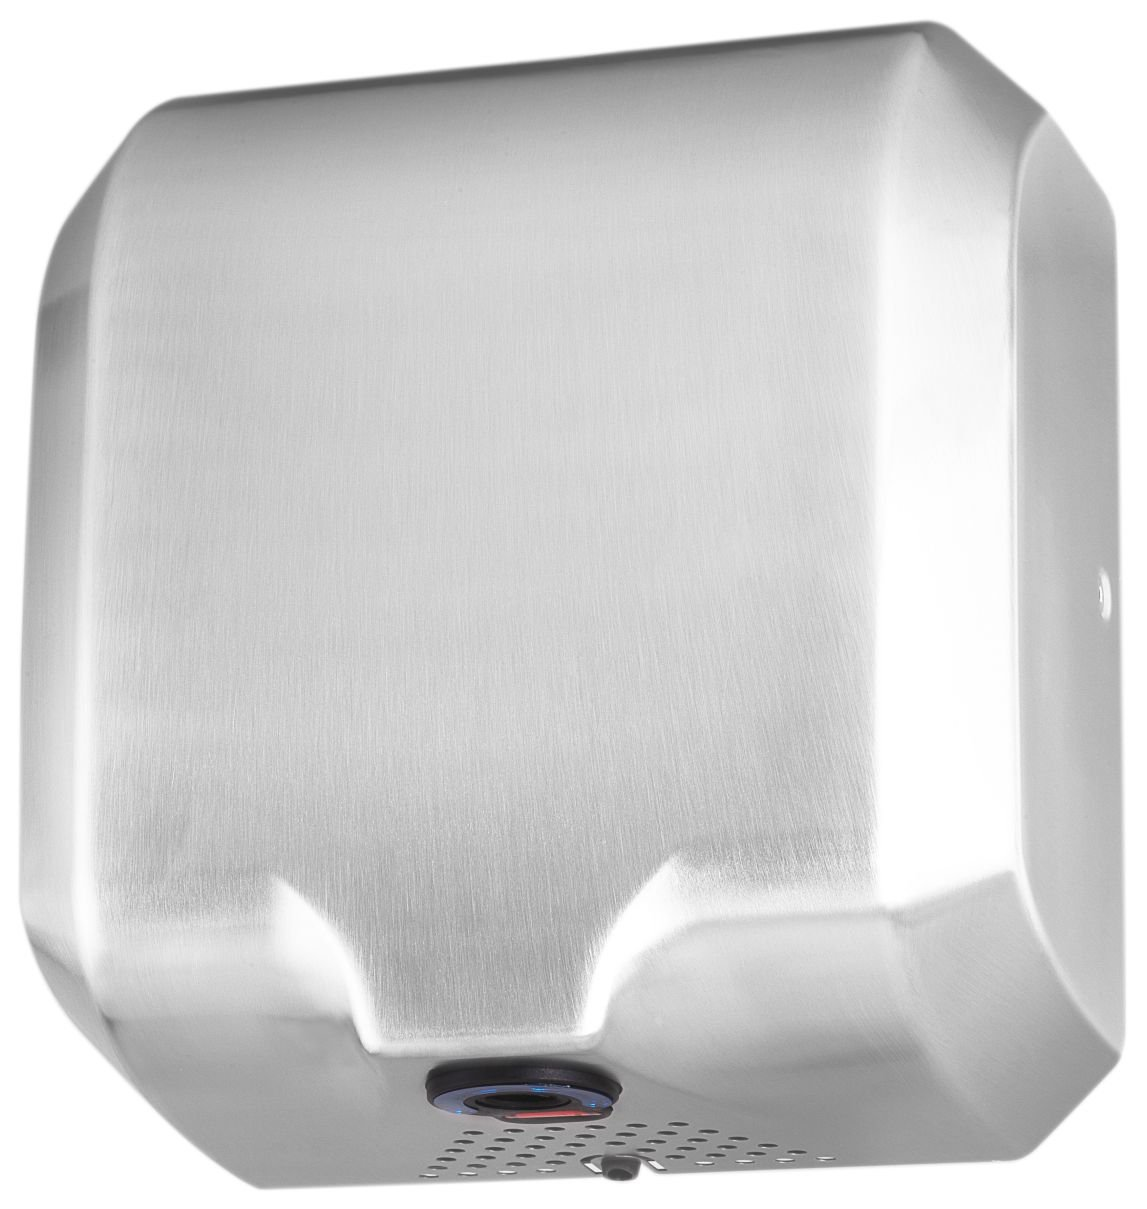 ASIALEO Heavy Duty Commercial High Speed Electric Automatic Hot Hand Dryer,110V/1800W,Brushed Stainless Steel 304.